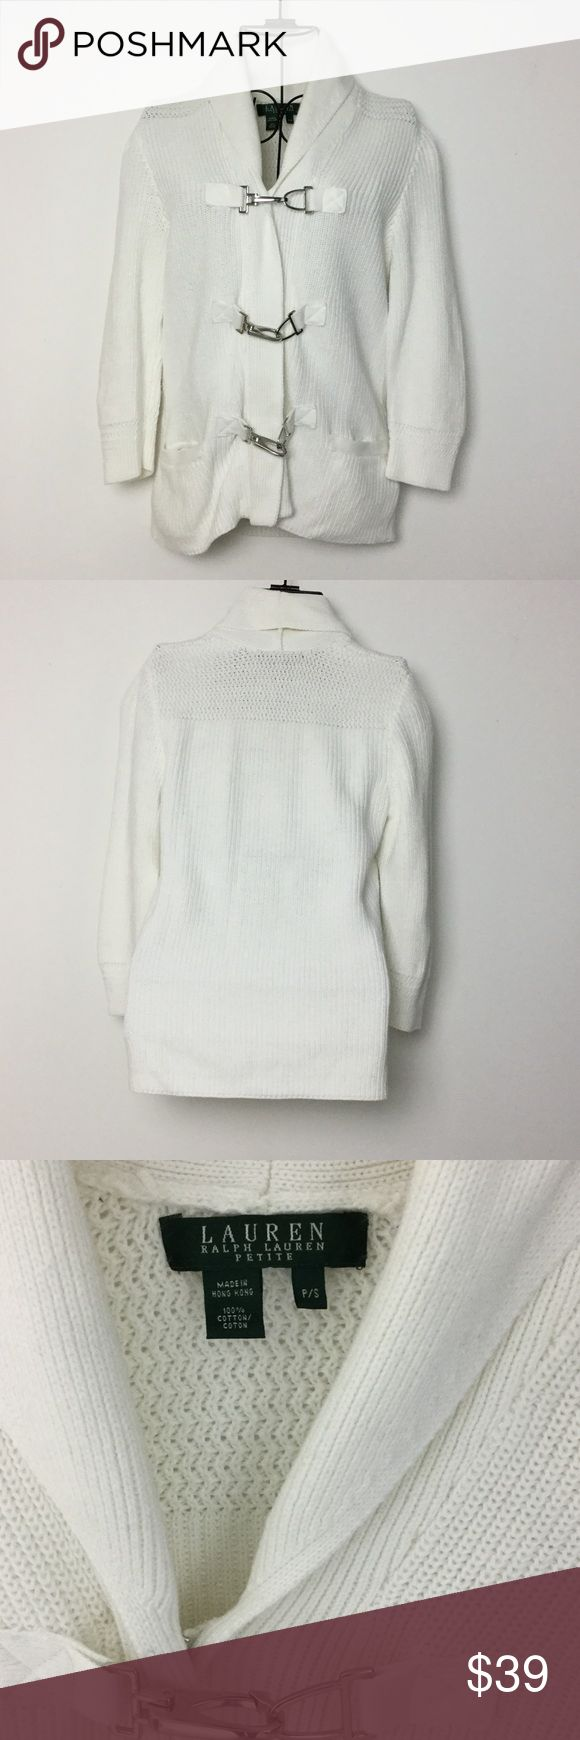 Ralph Lauren Hook Clasp Sweater White sweater.  Three hook clasp with zipper closure in front.  Shaw collar.  3/4 sleeves.  Front pockets.  100% Cotton.  No trades. Lauren Ralph Lauren Sweaters Cardigans